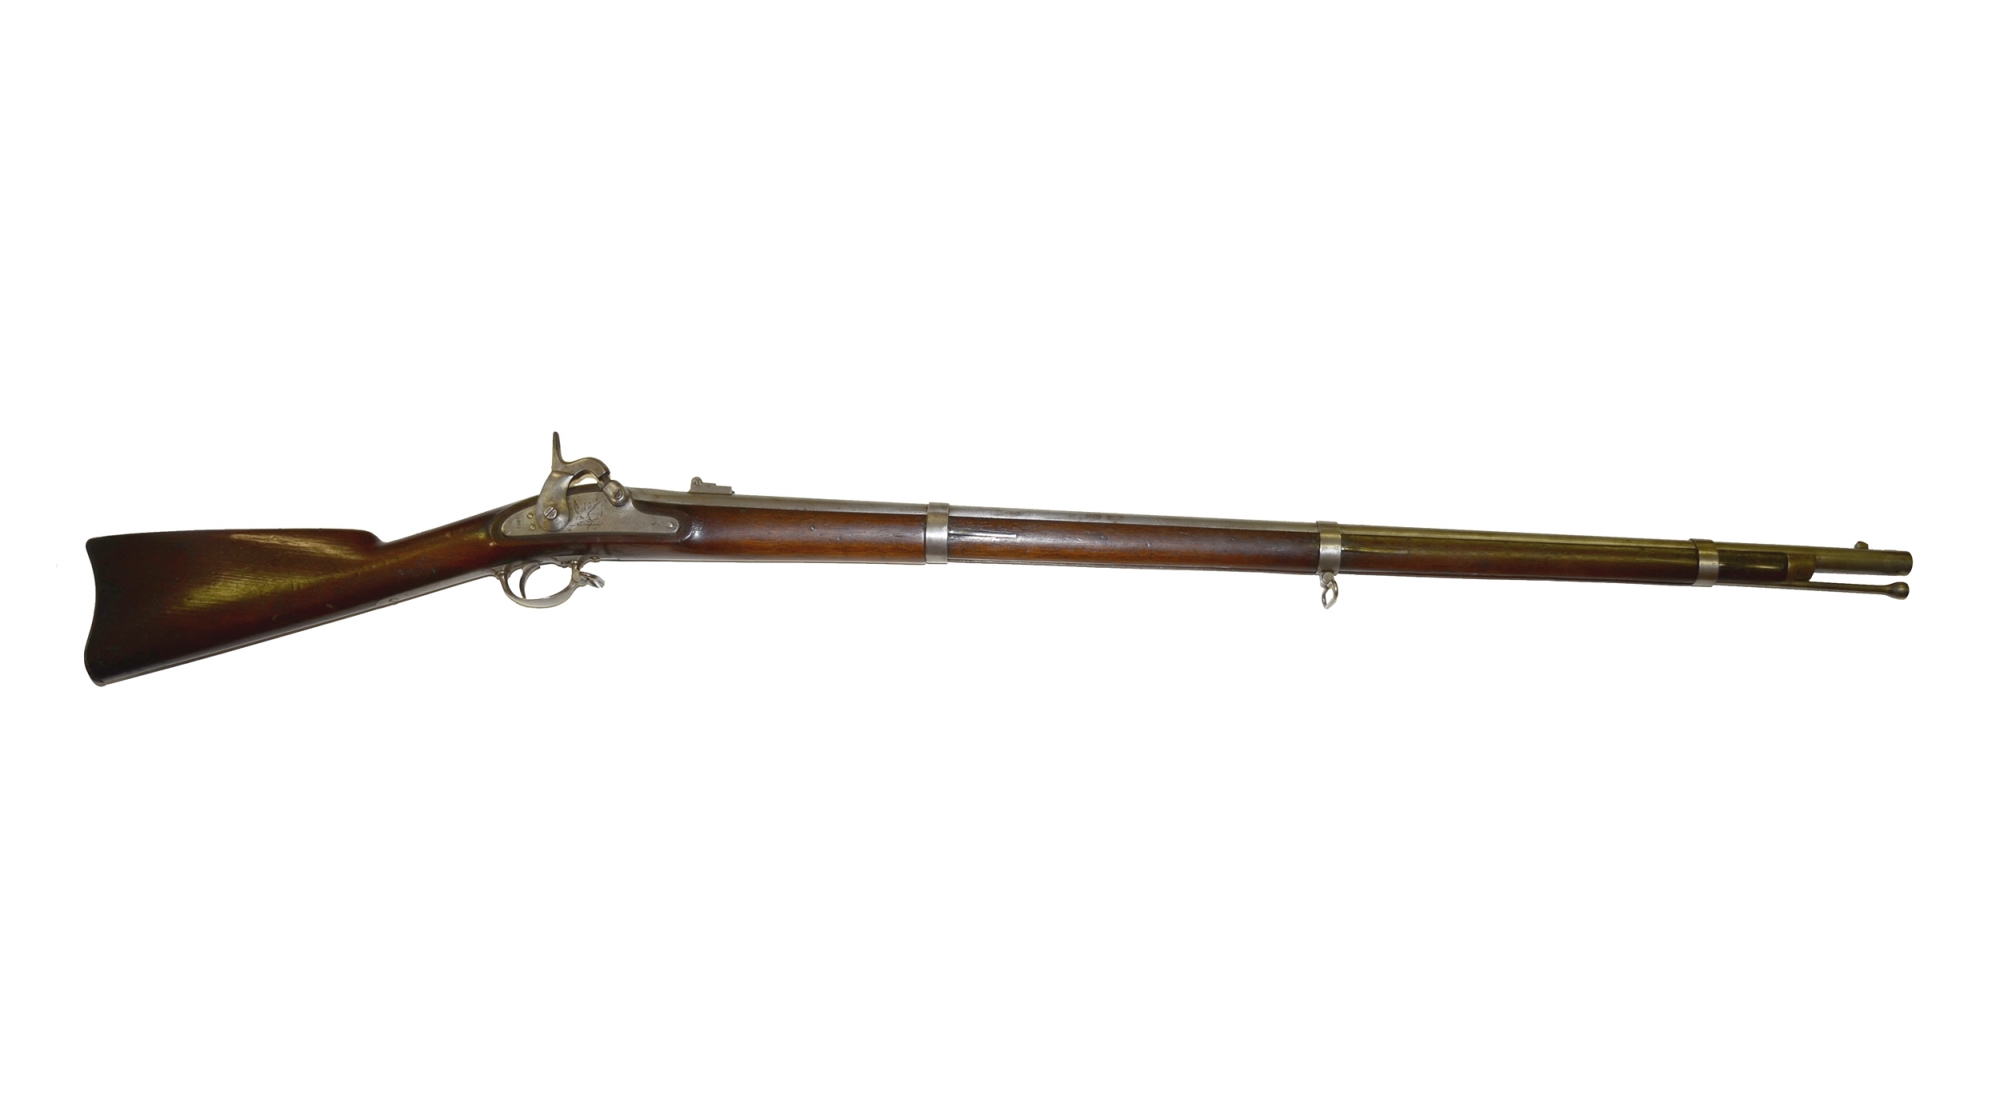 'WHITNEYVILLE' CONTRACT MODEL 1861 .58 CALIBER MUSKET DATED 1863